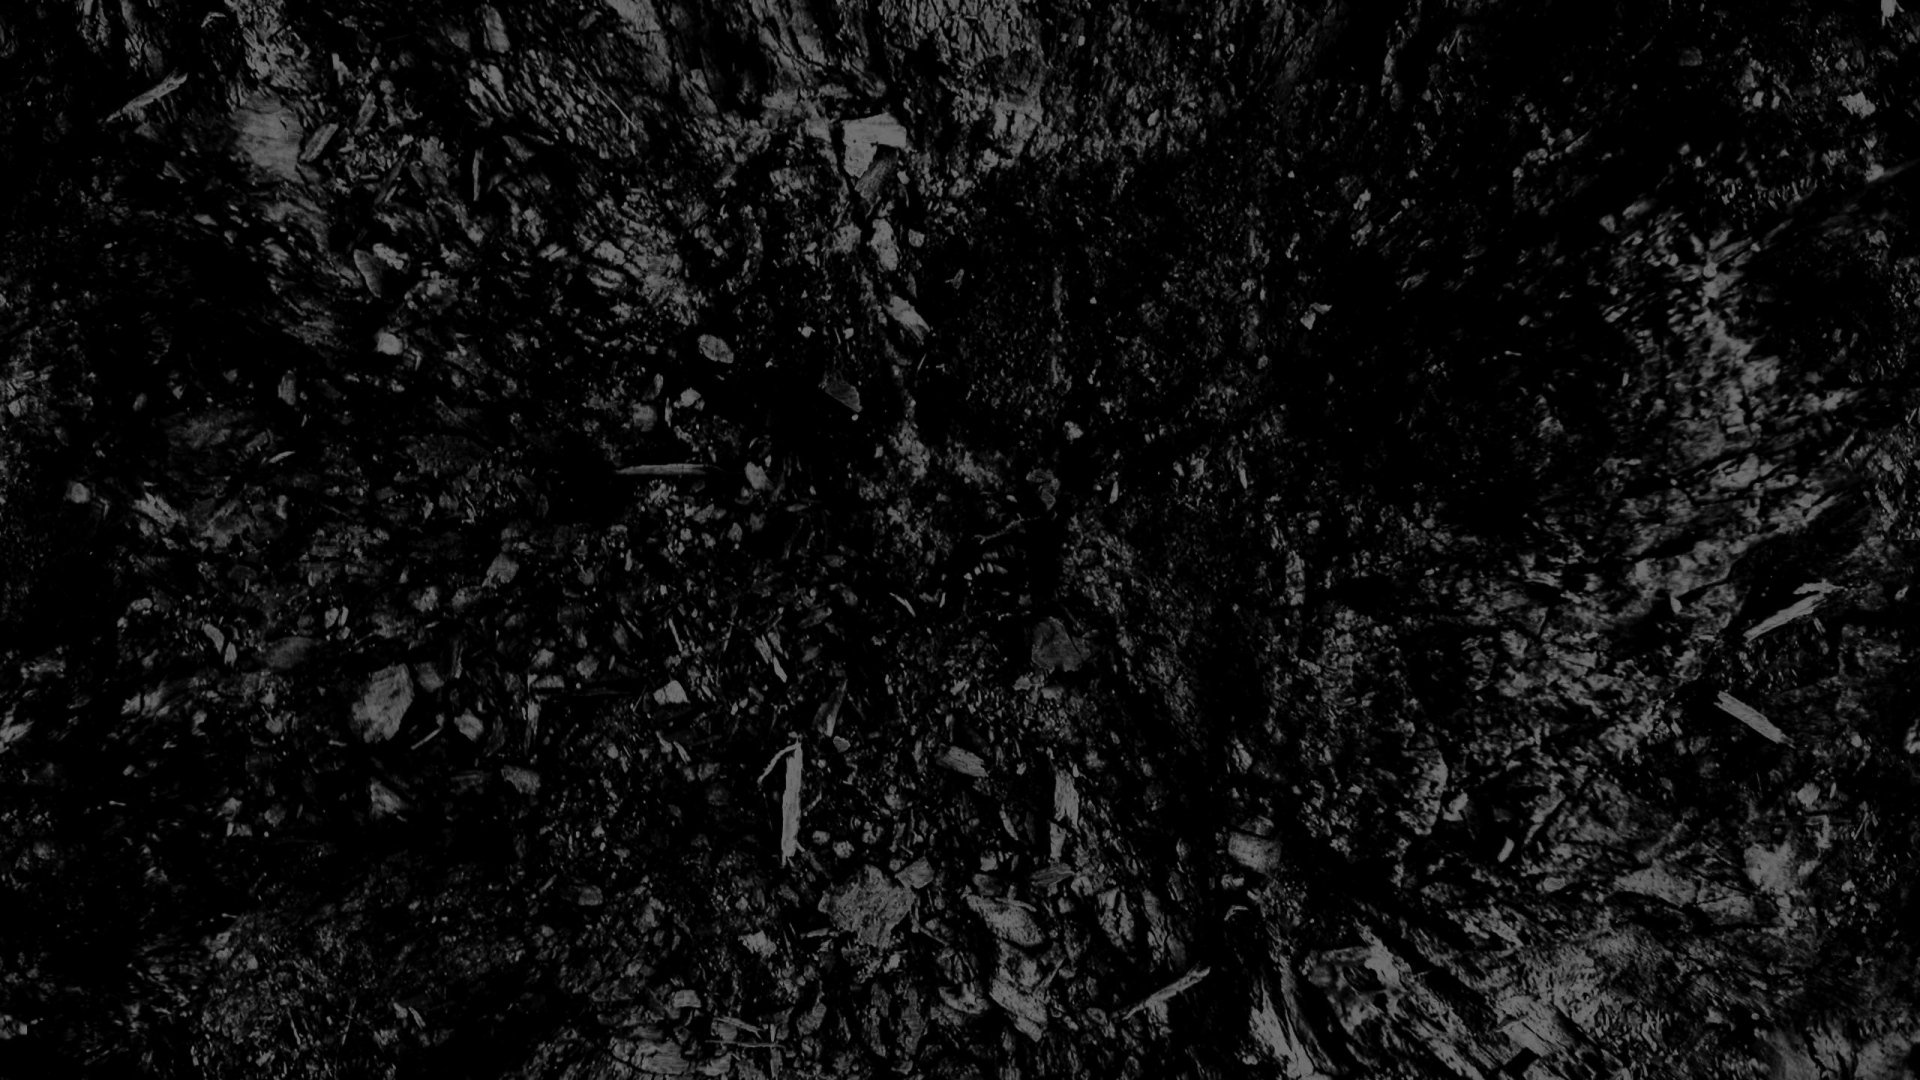 Black Abstract Wallpaper Hd Flip Wallpapers Download 1920x1080